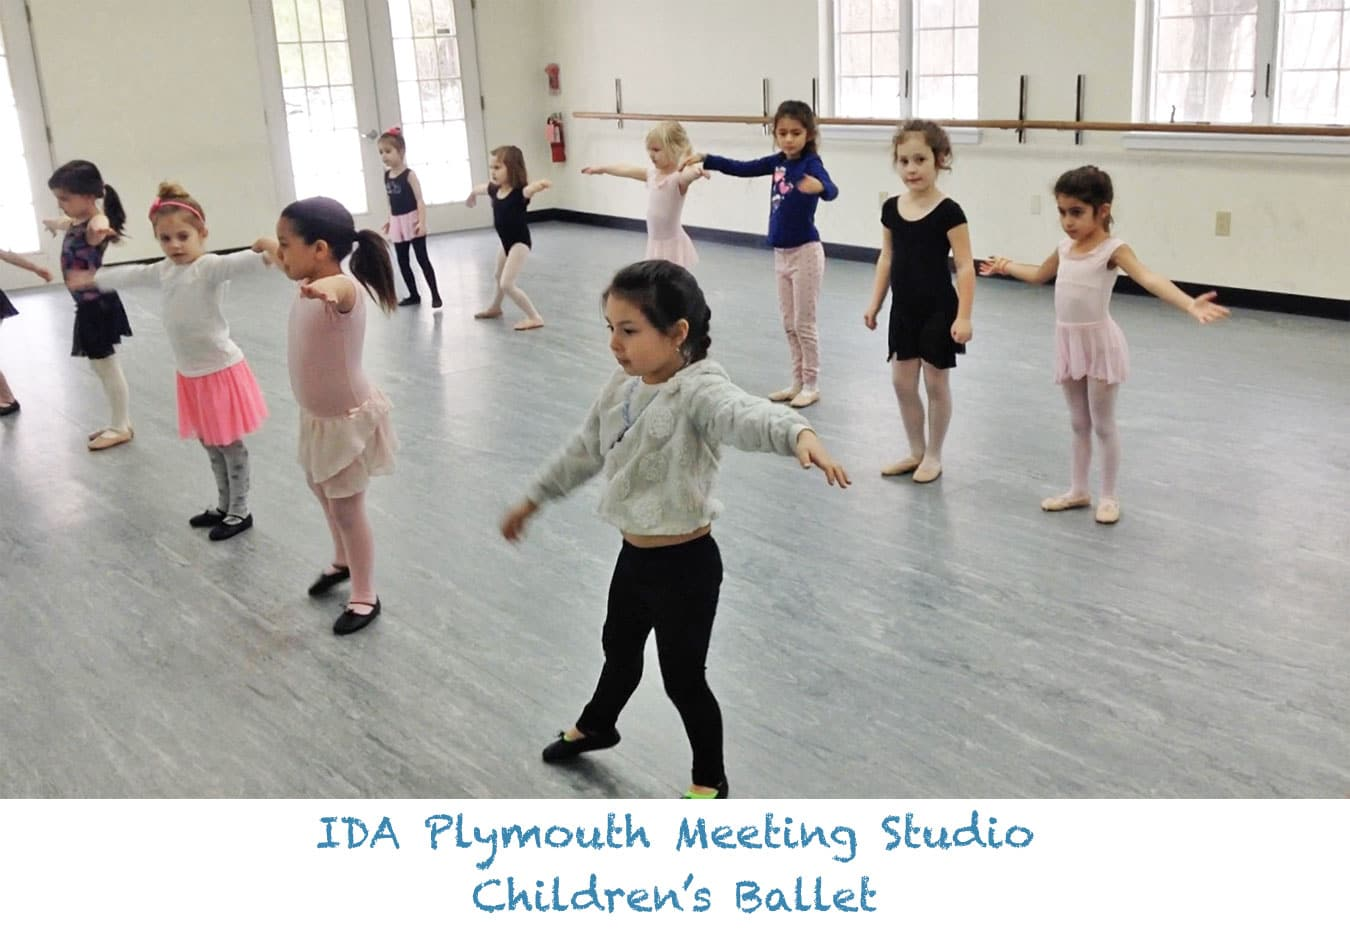 IDA, Institute of Dance Artistry Children's Plymouth Meeting PA studio provides Children's Dance classes including Ballet classes. This IDA studio also services Whitemarsh Township, Conshohocken, Lafayette Hill, and Whitpain Township.